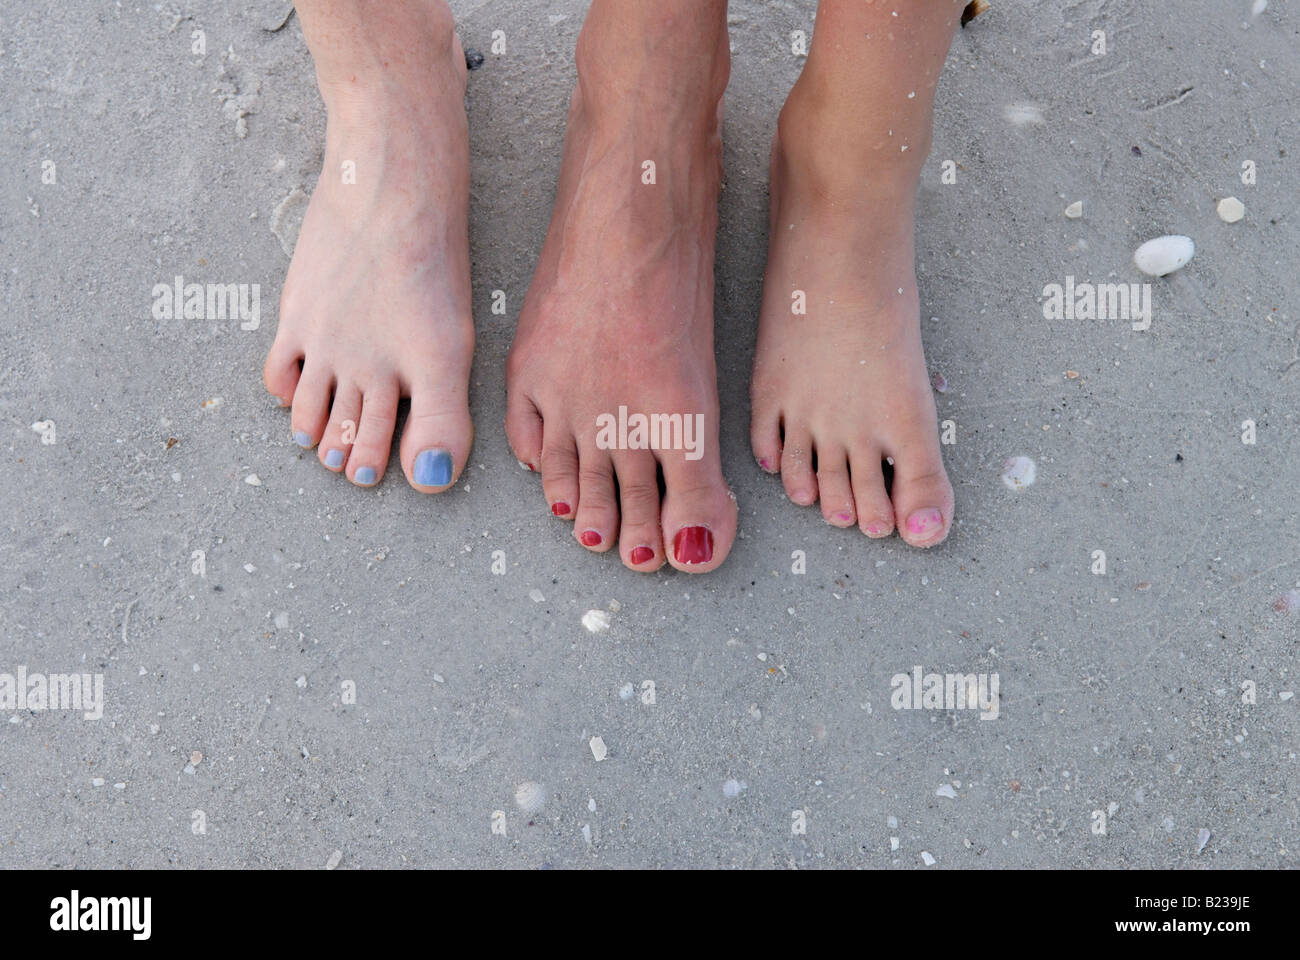 3 girlfriends stock photos   3 girlfriends stock images at home self tan at home self tanner